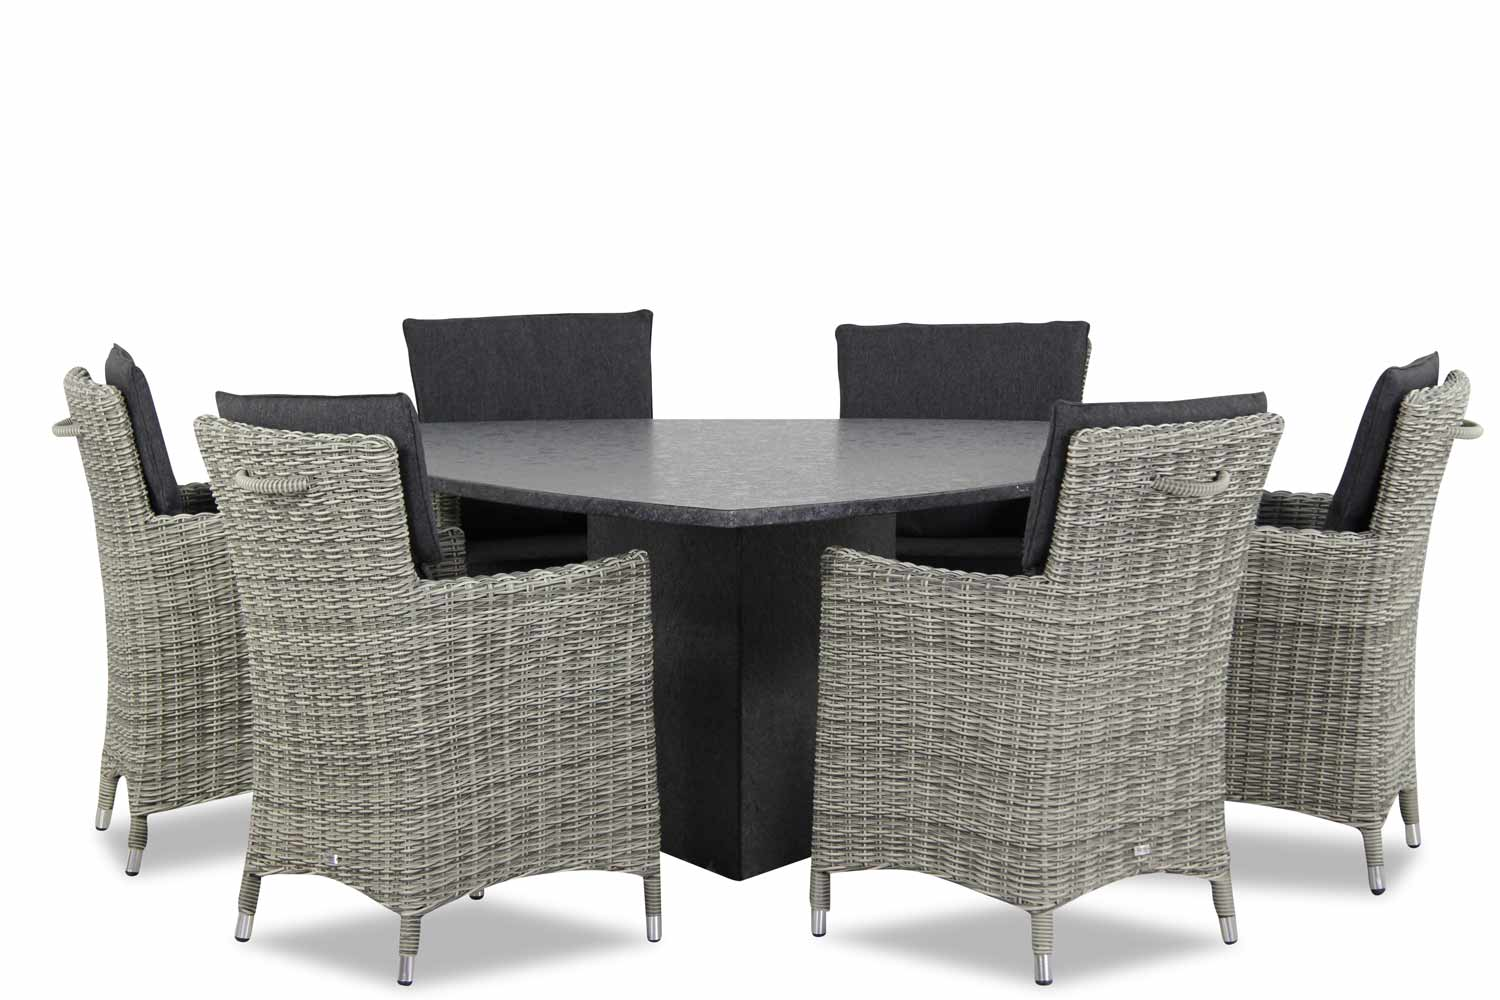 Wicker Garden Collections Springfield/graniet triangel 170 cm dining tuinset 7-delig